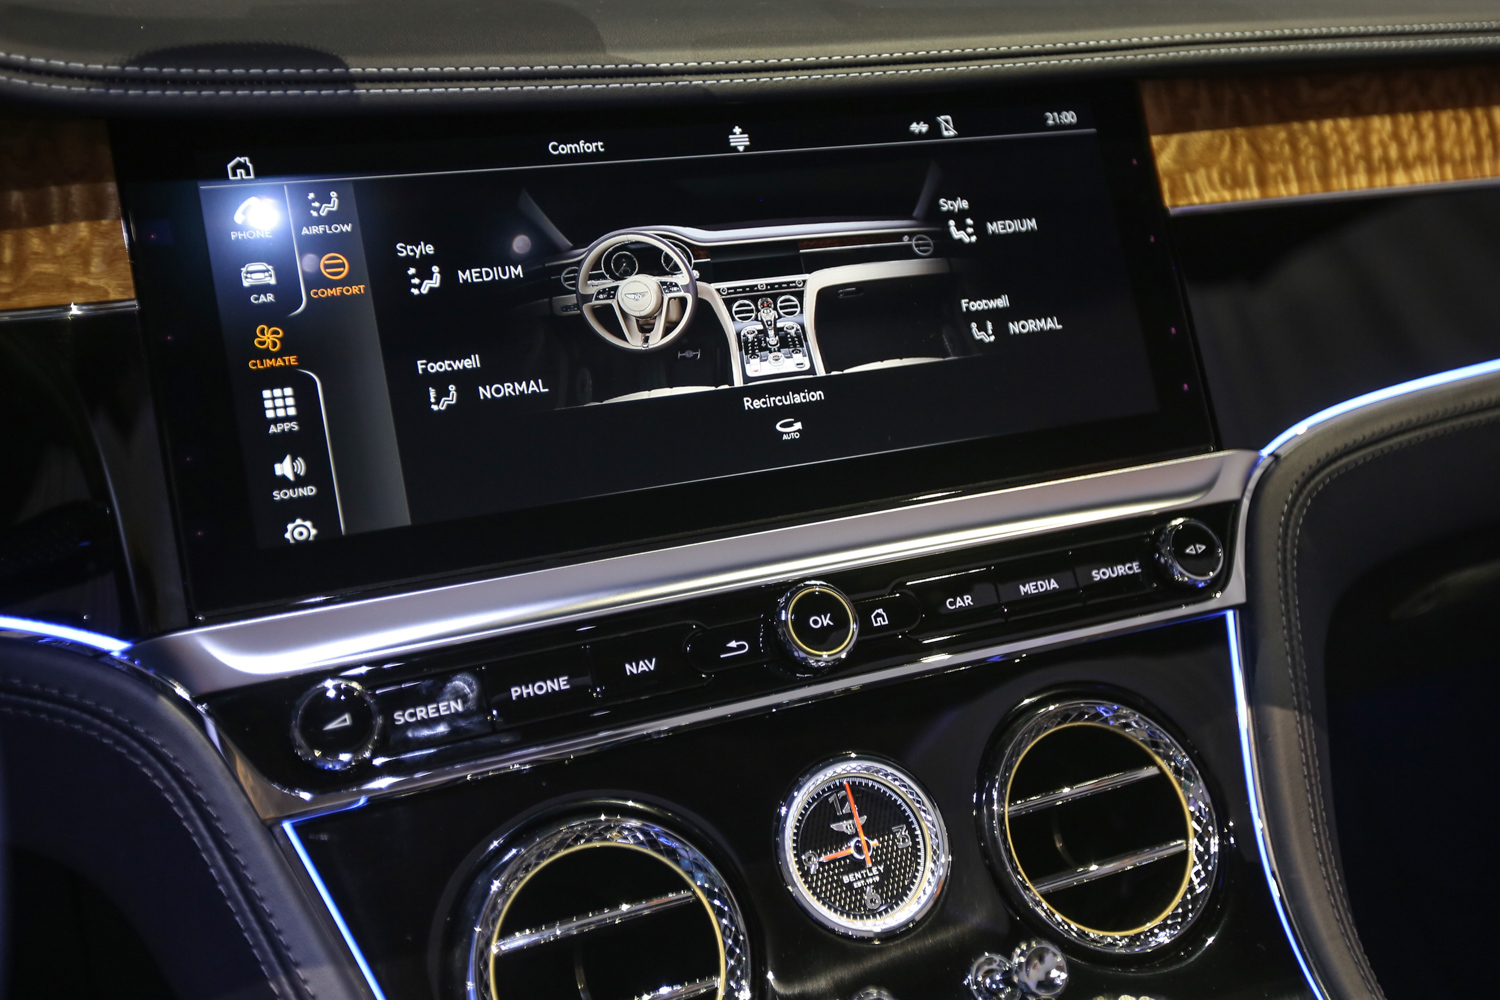 Bentley gives driver two different options for the center stack when driving, one digital, the other analog. info screen